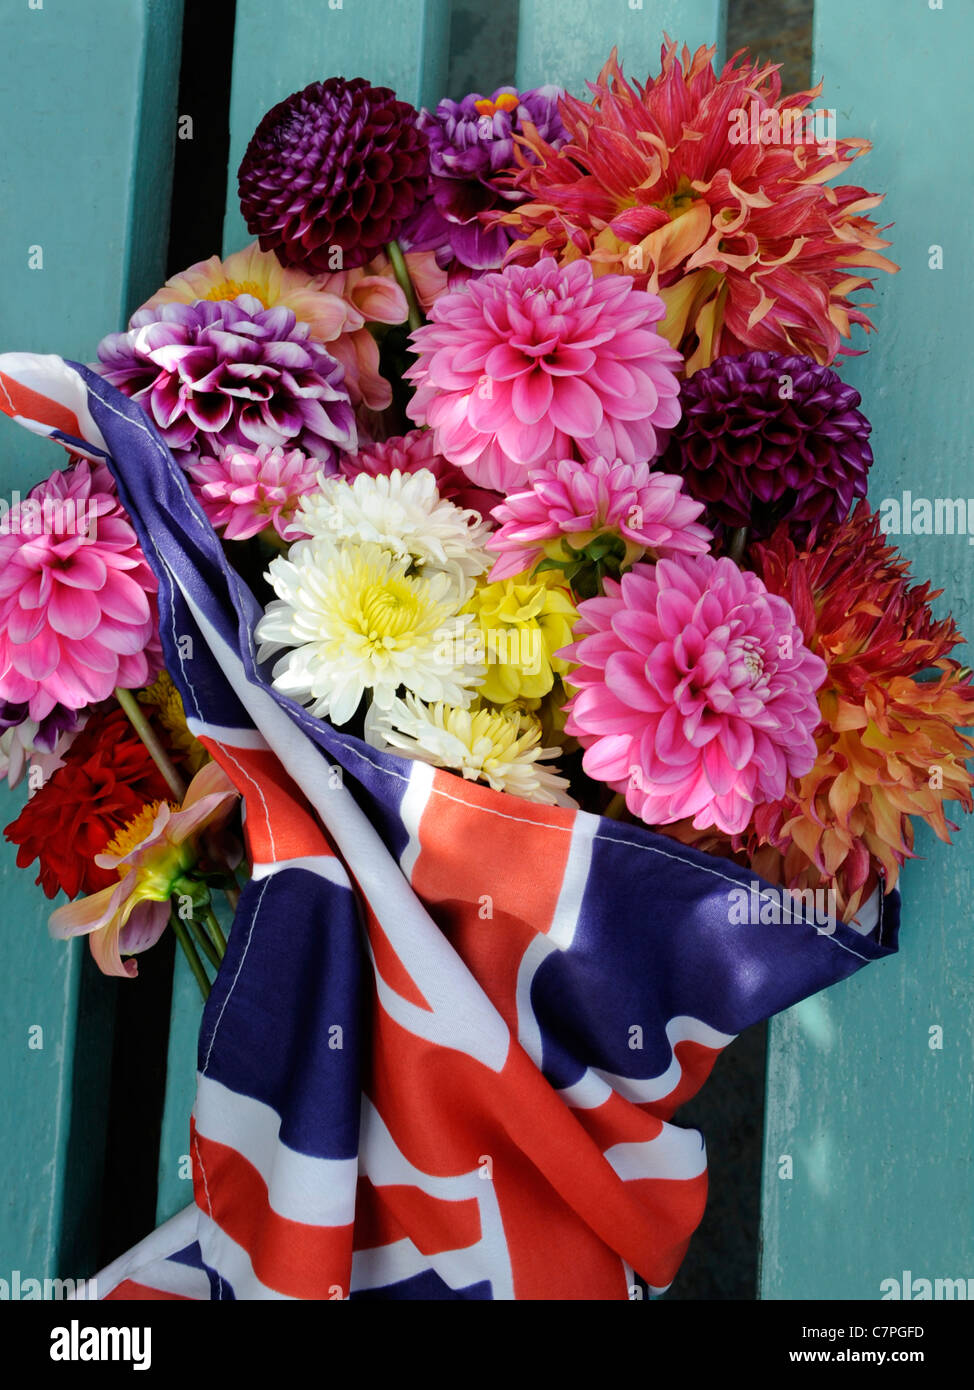 A bunch of dahlia flowers in a union jack flag - Stock Image